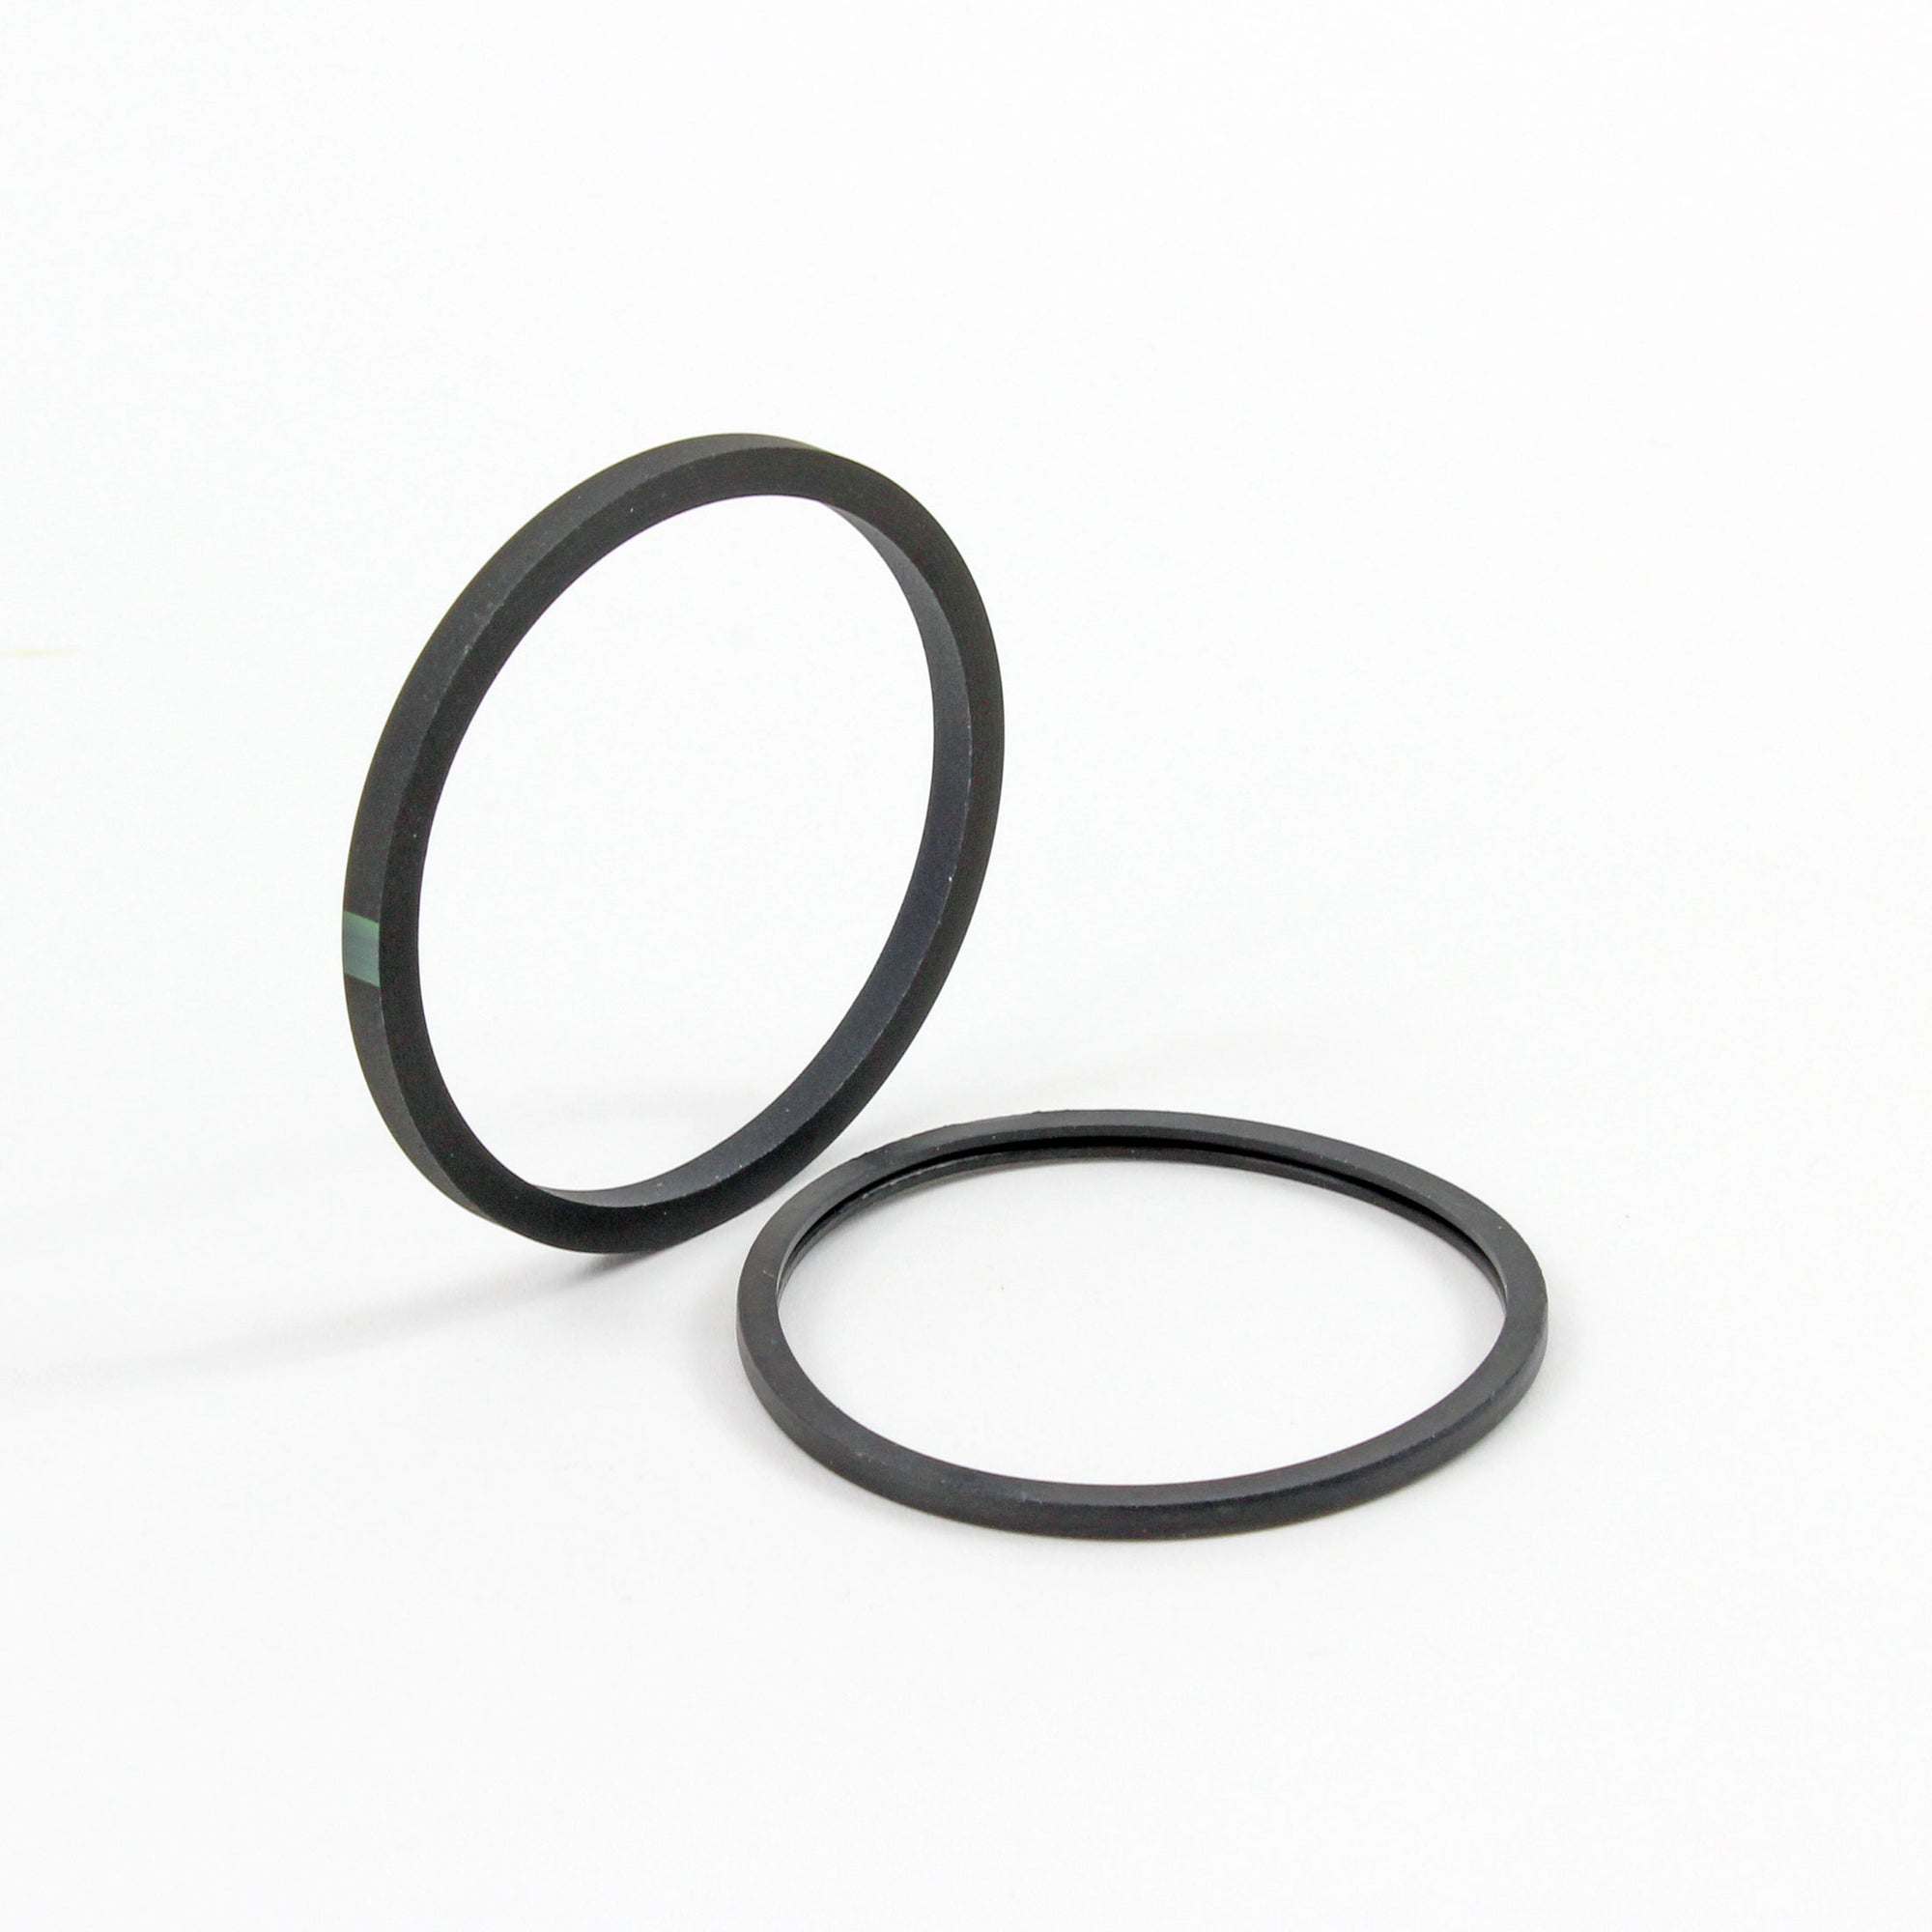 Internal Diameter (I.D) 43mm - Motorcycle Brake Caliper Seal set (Pressure seal - Dust Seal)